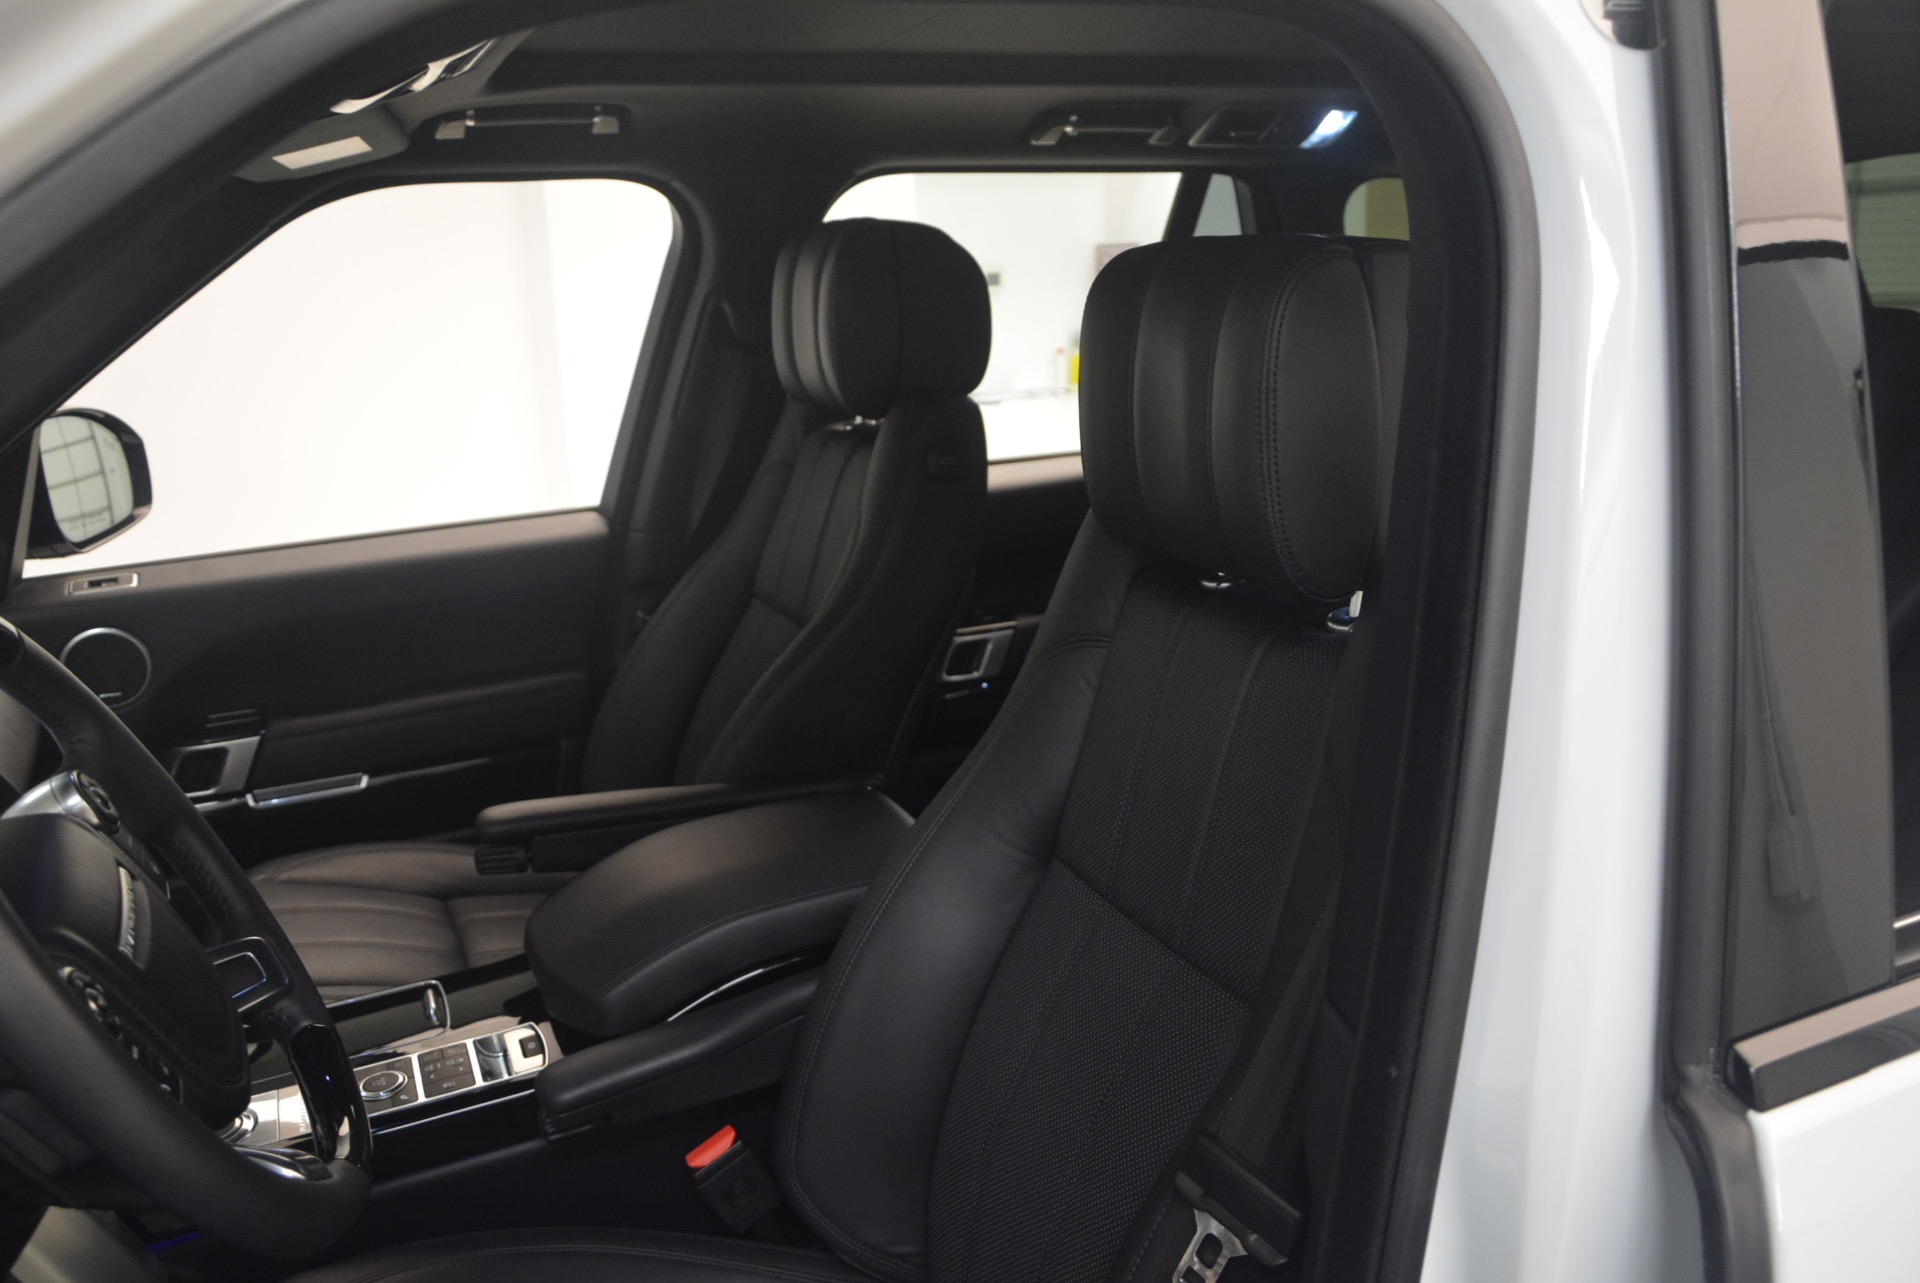 Used 2015 Land Rover Range Rover Supercharged For Sale In Greenwich, CT 1292_p19